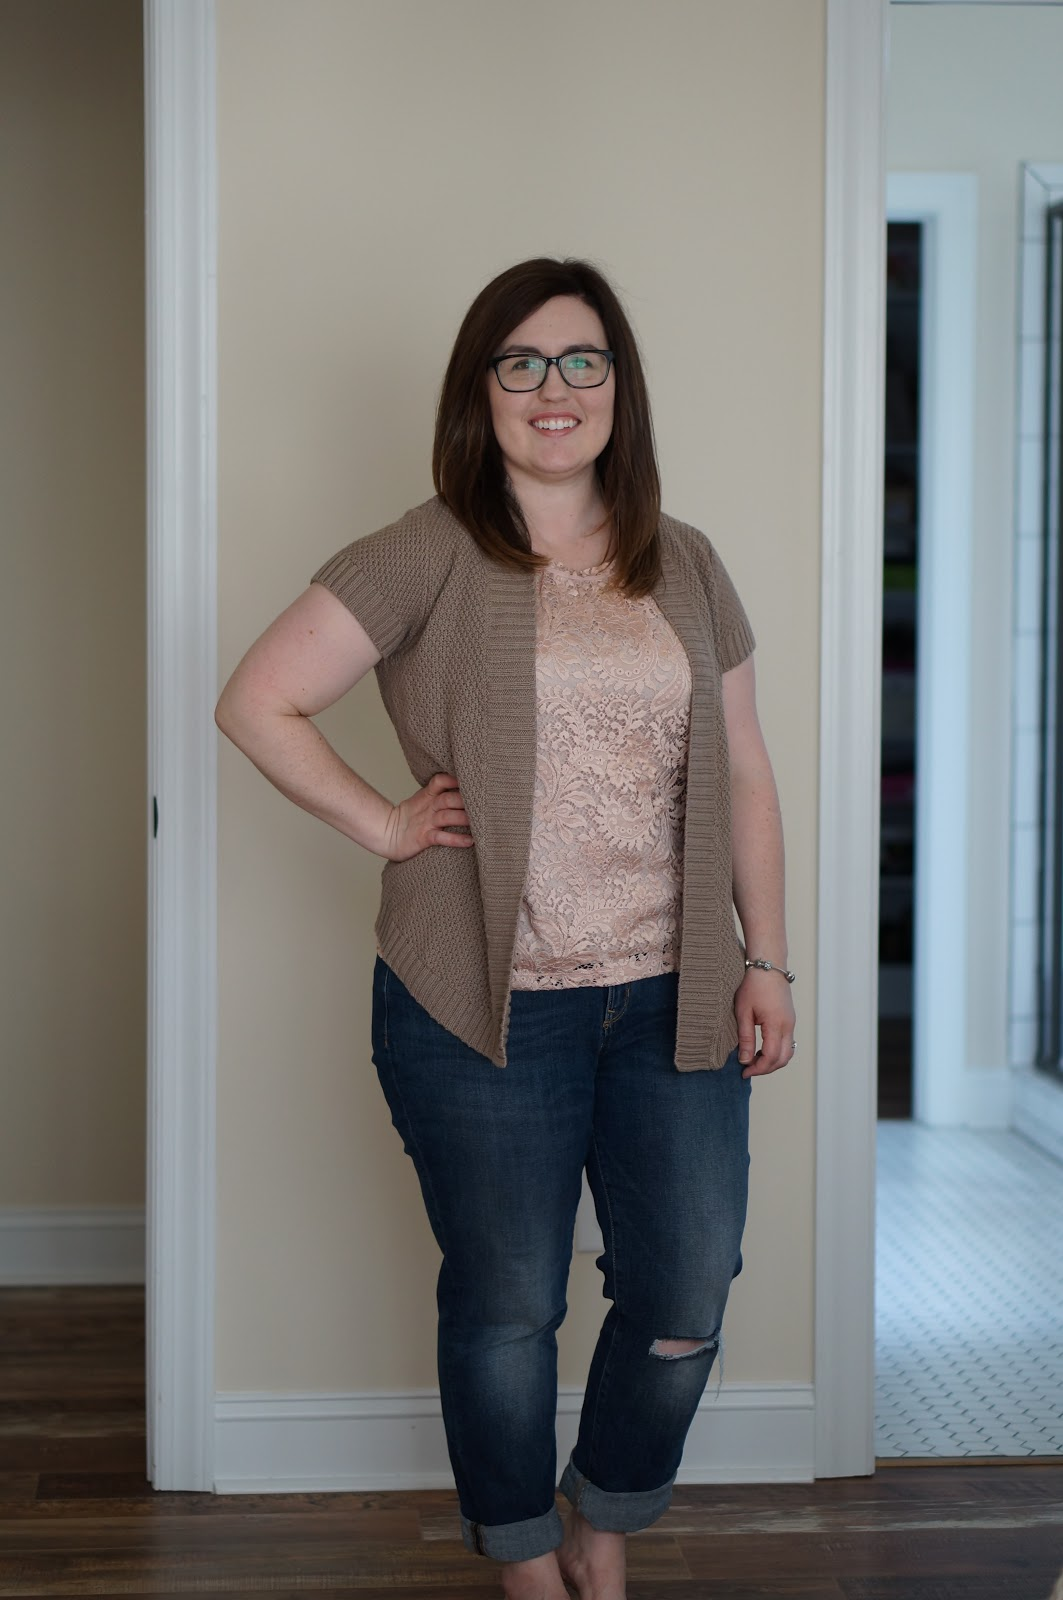 THRIFT STORE FASHION | THREDUP HAUL by North Carolina fashion blogger Rebecca Lately